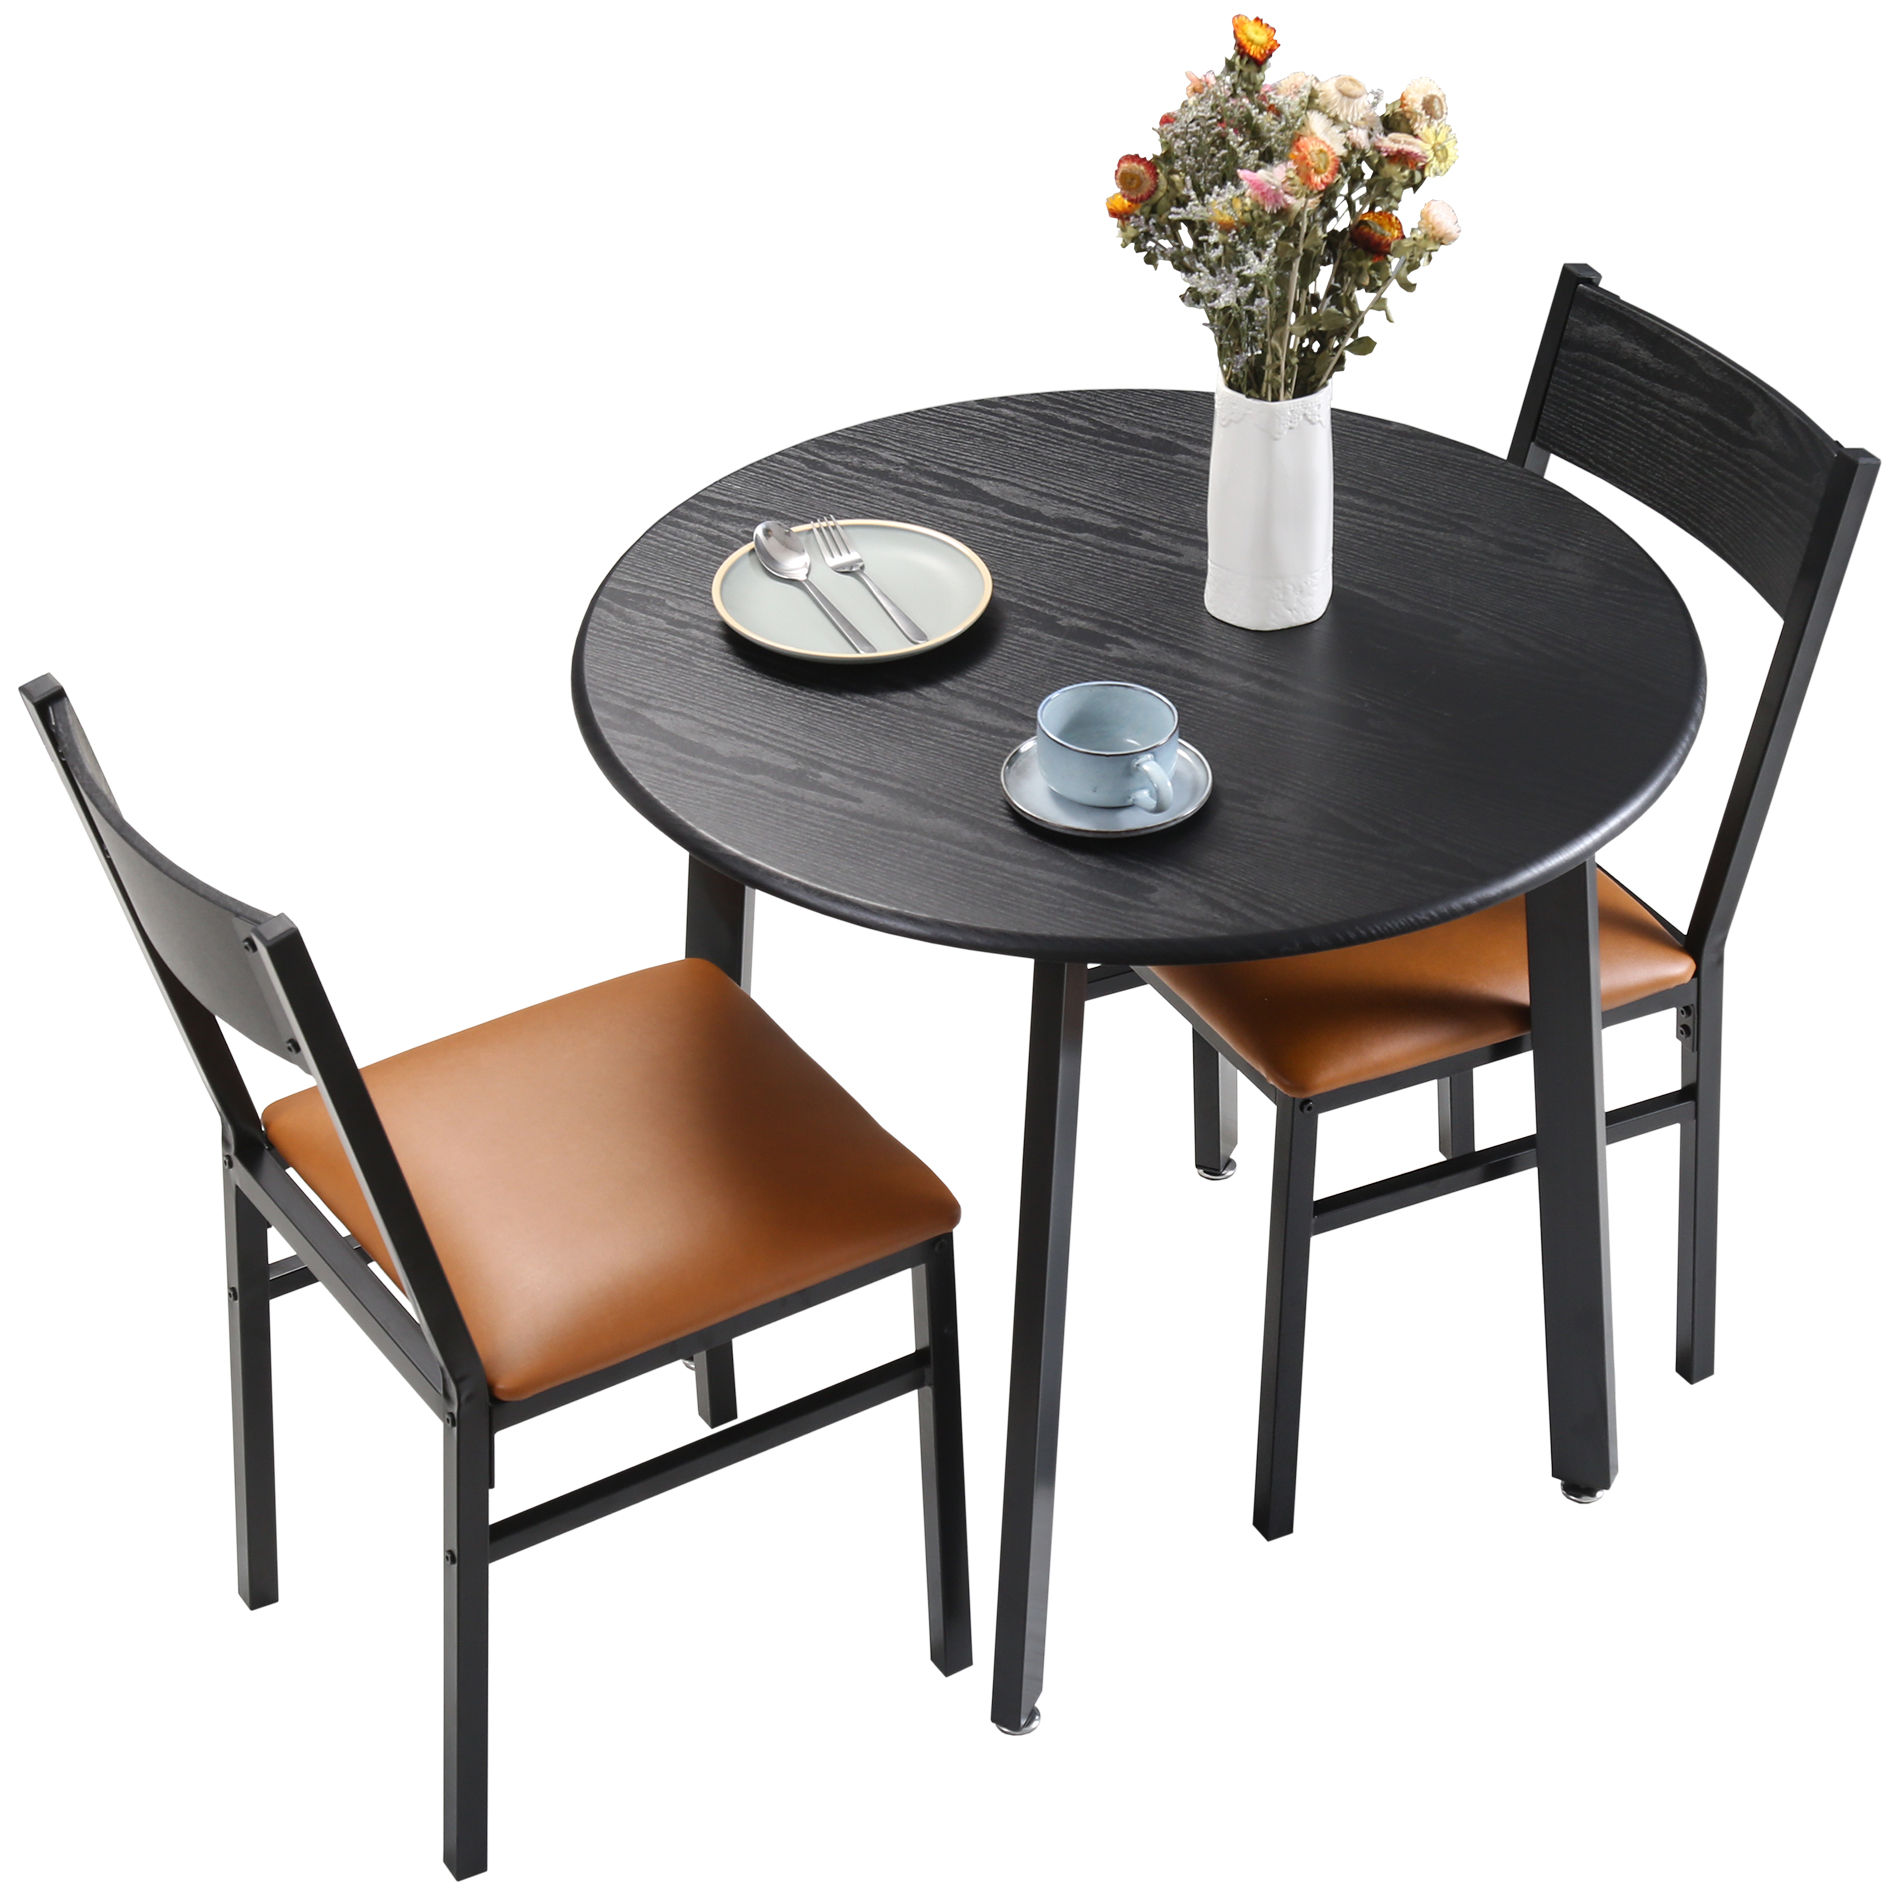 3 Piece Round Dining Table Set With Cushioned Chairs For Dining Room Kitchen Small Spaces Espresso And Brown Walmart Com Walmart Com